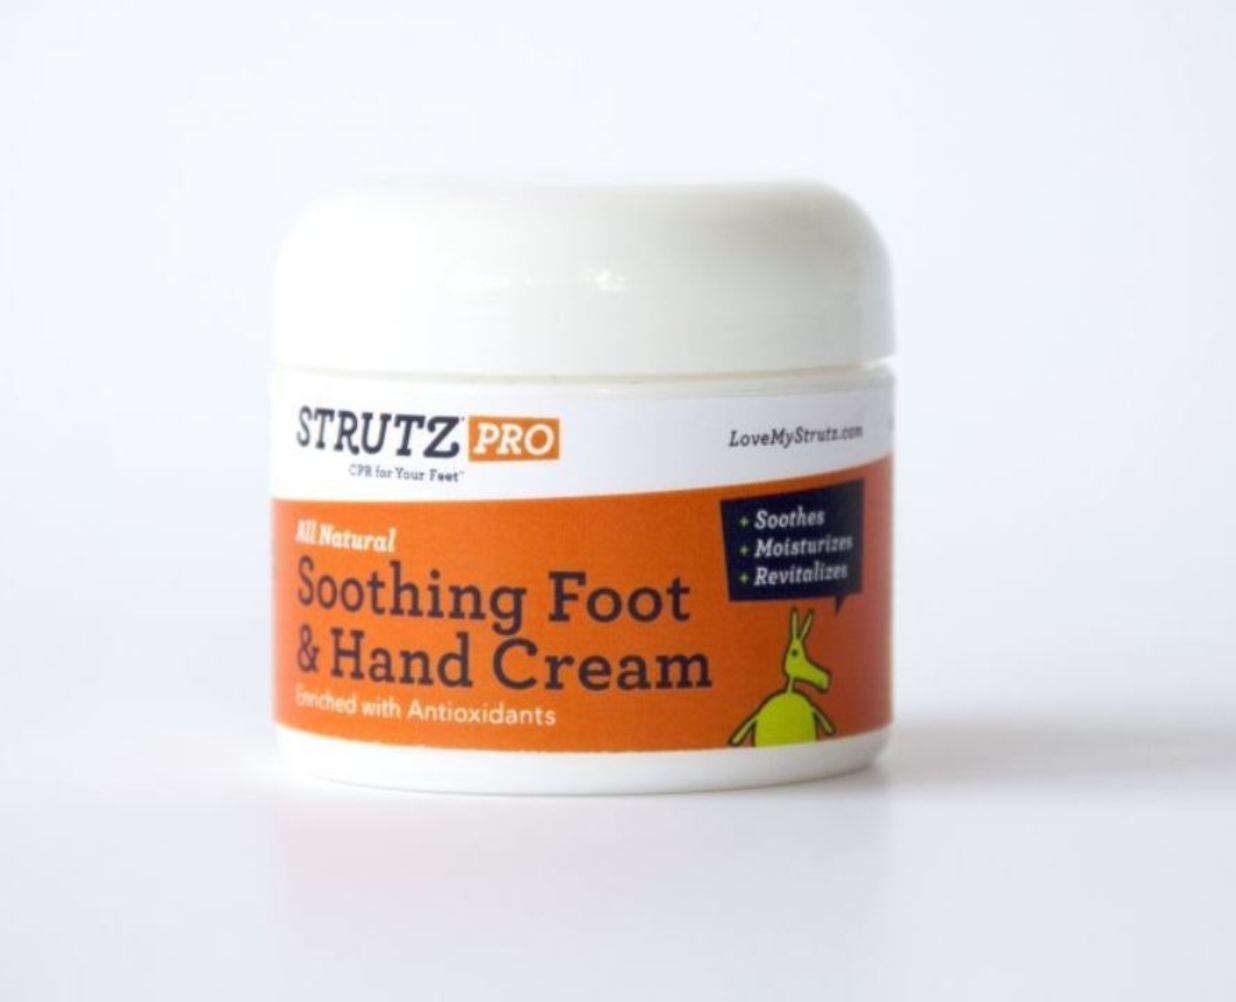 Strutz Soothing Hand & Foot Cream – Moisturize Dry Skin with Natural Ingredients